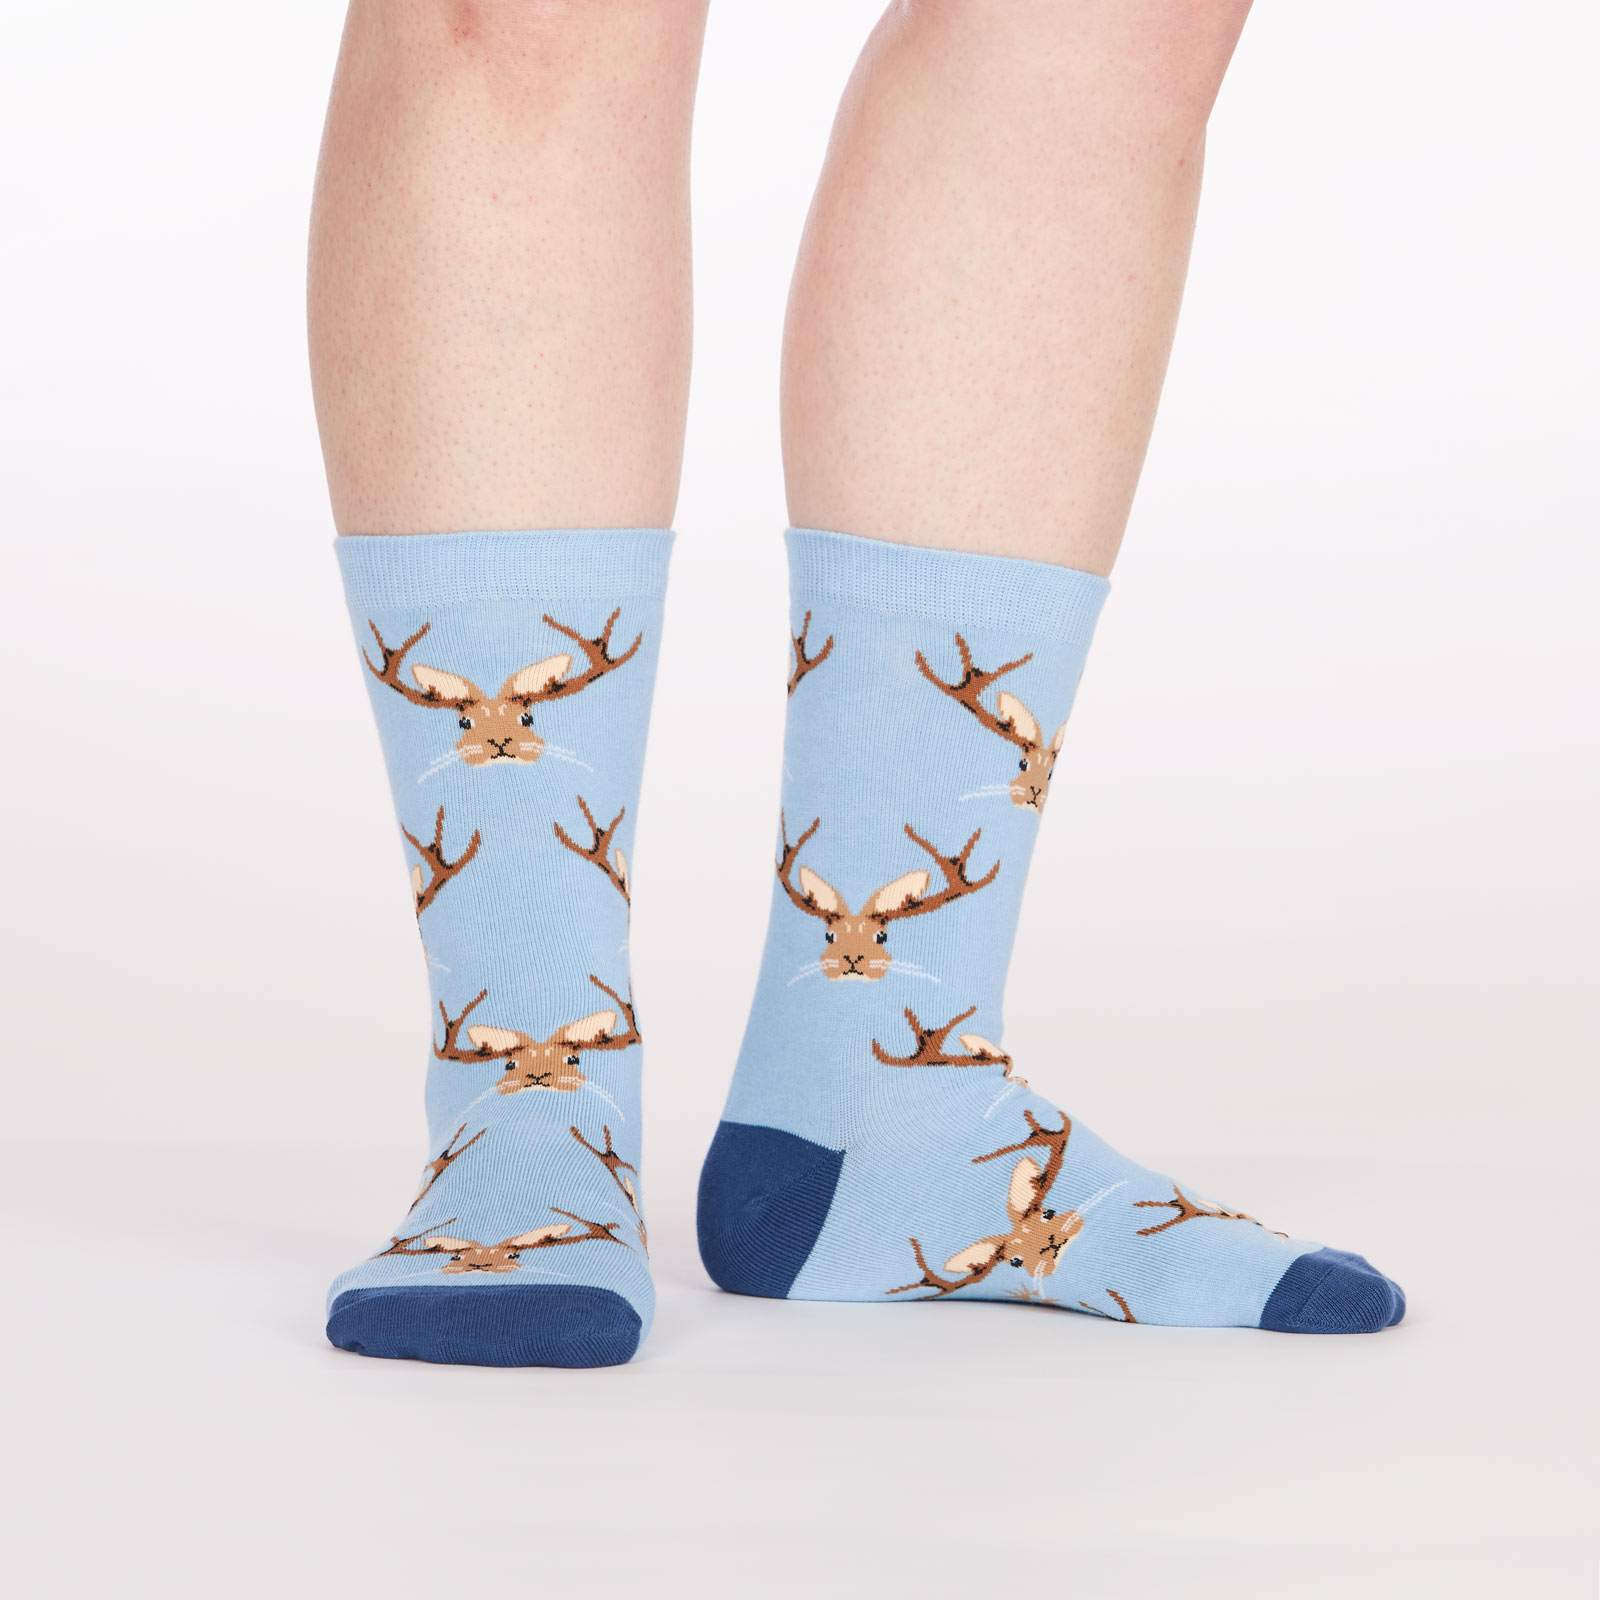 Calcetines-jackalope-sock-it-to-me-the-socks-closet